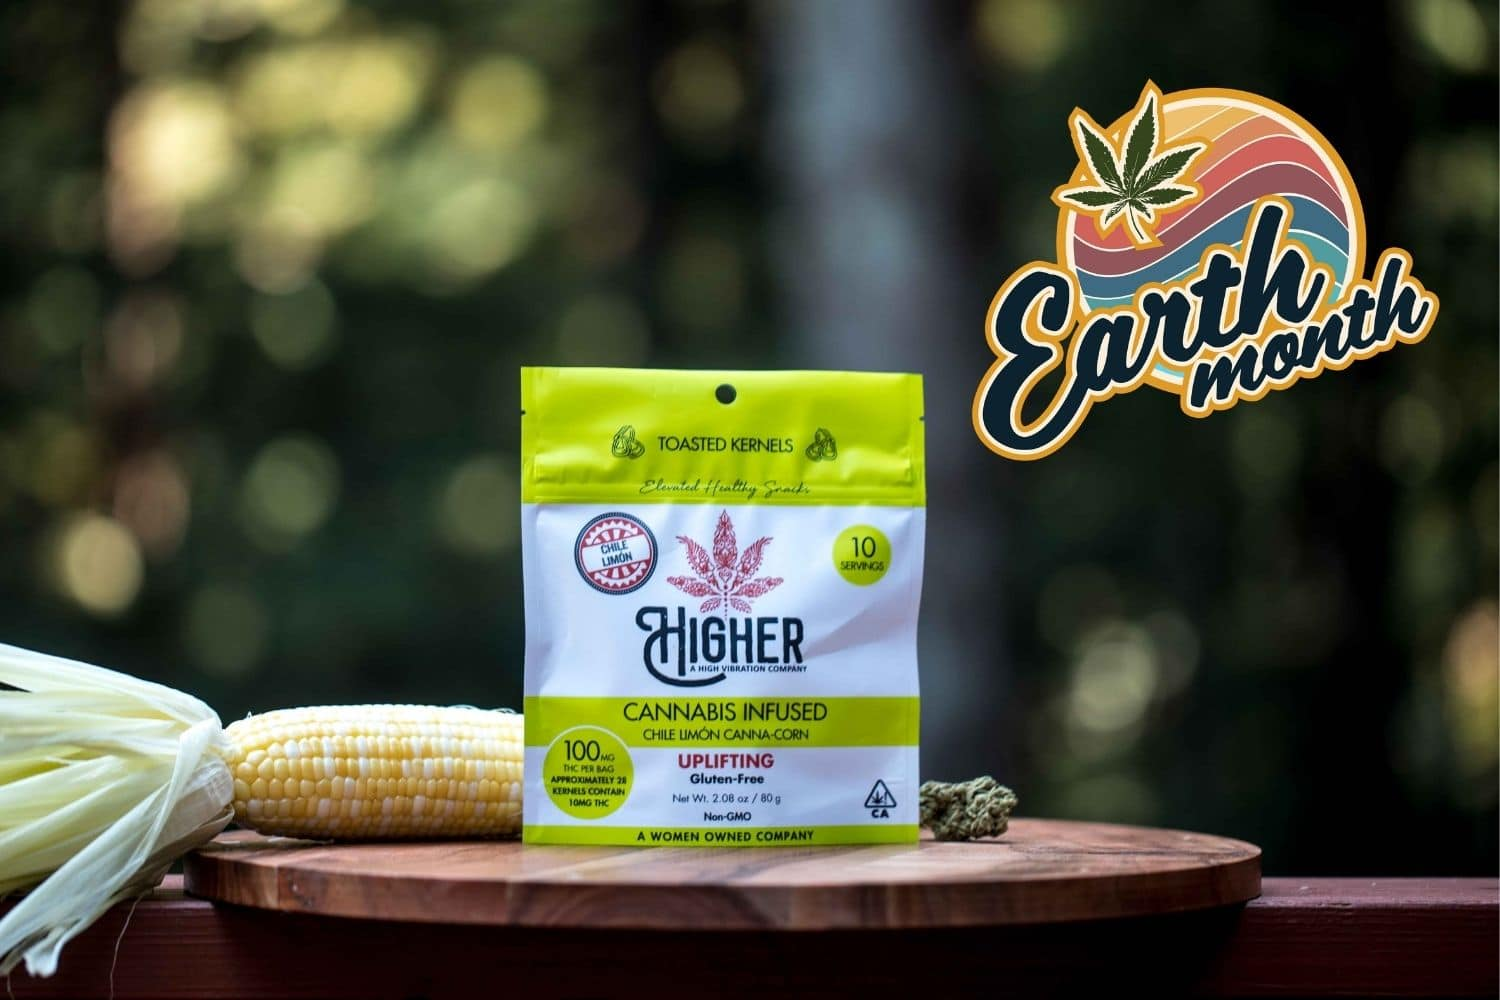 Higher Edibles: Raising the Bar for Sustainability in Cannabis